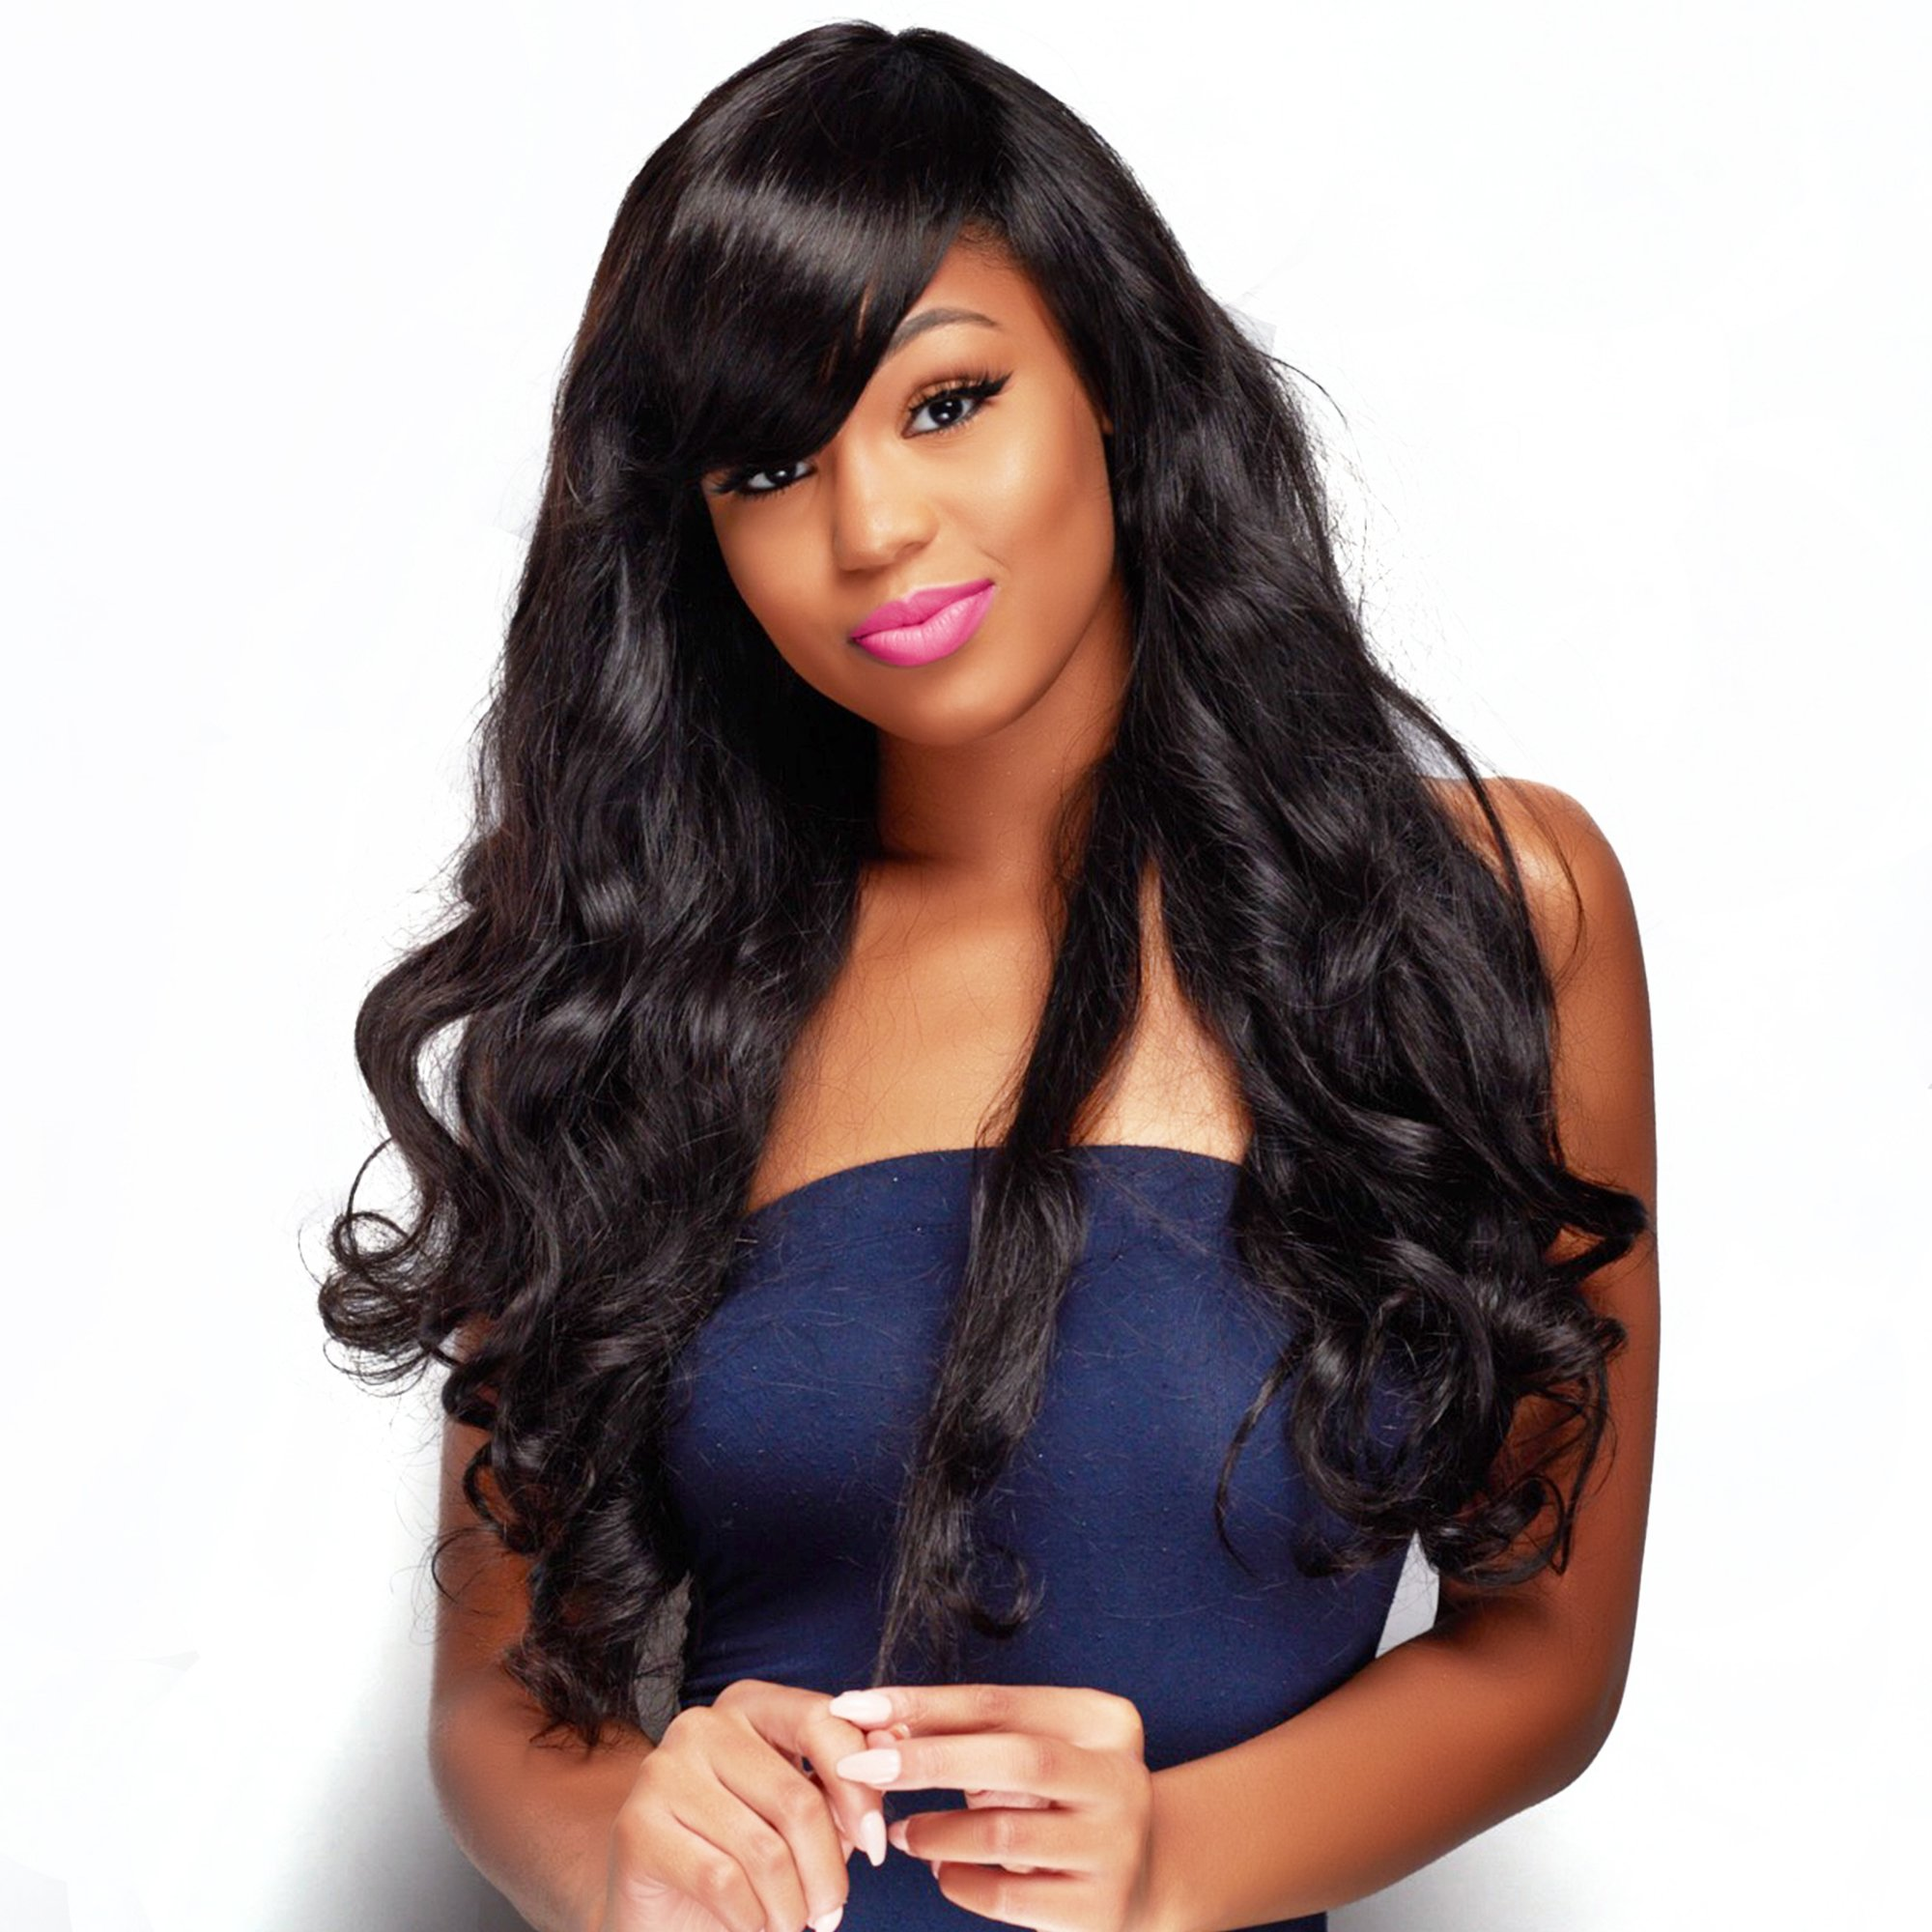 Unice Hair 18 20 22inch Brazilian Virgin Human Hair Weave 3 Bundles Deal Brazilian Body Wave Hair Weft Extensions Natural Color by UNICE (Image #2)